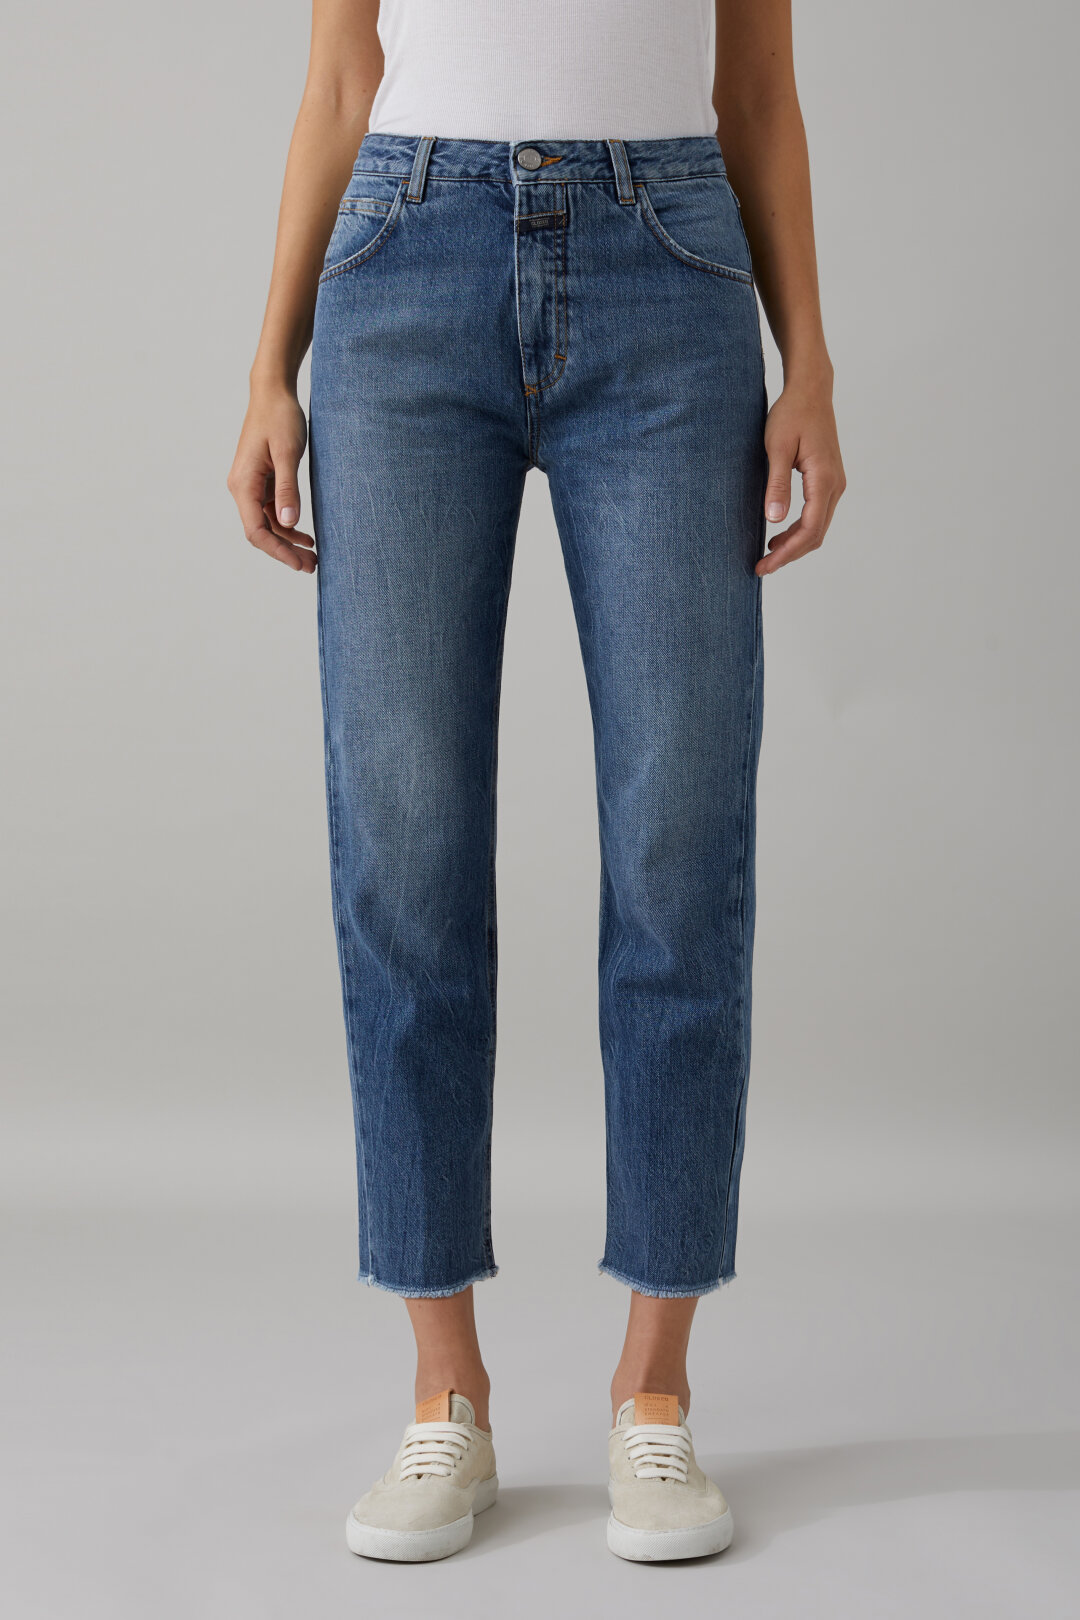 Heartbreaker Indigo Denim